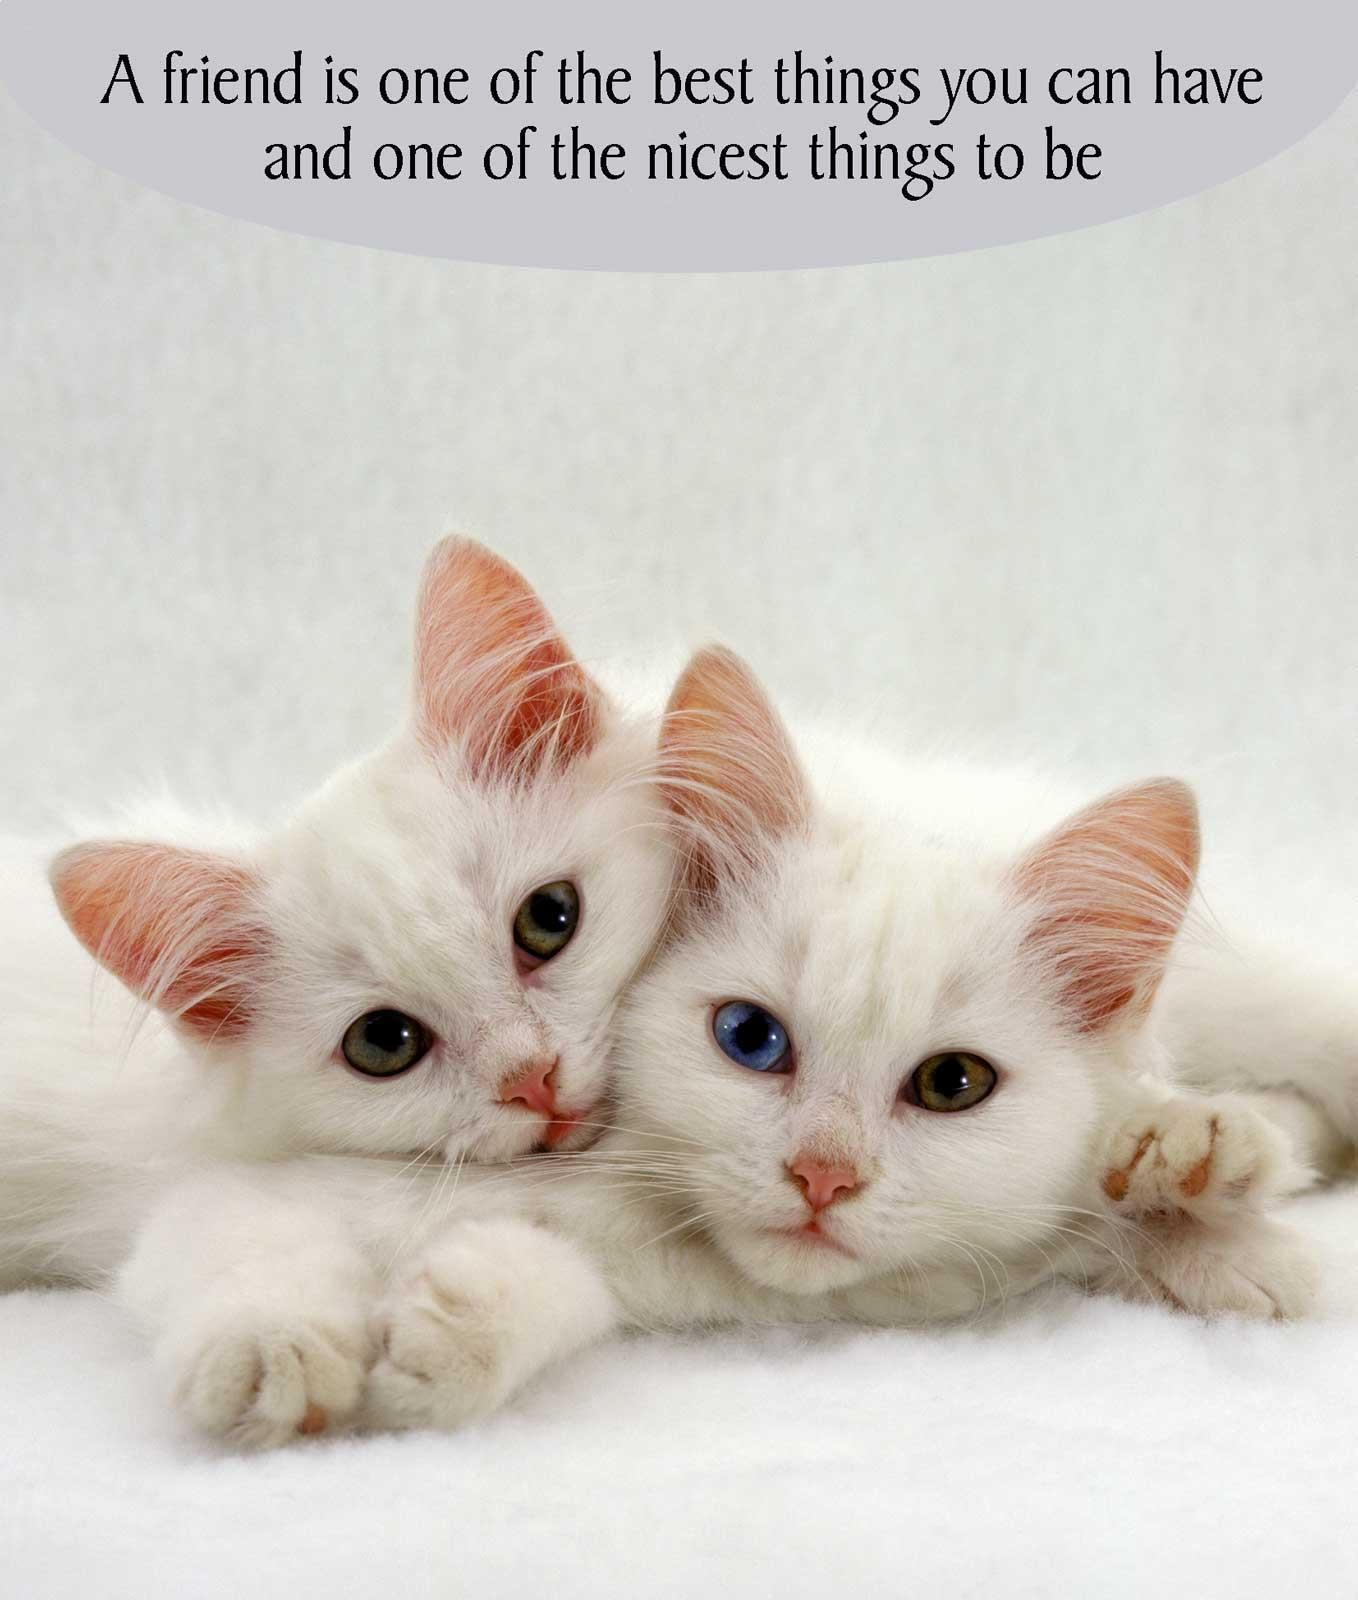 A Friend is One of the Best Things Greeting Card